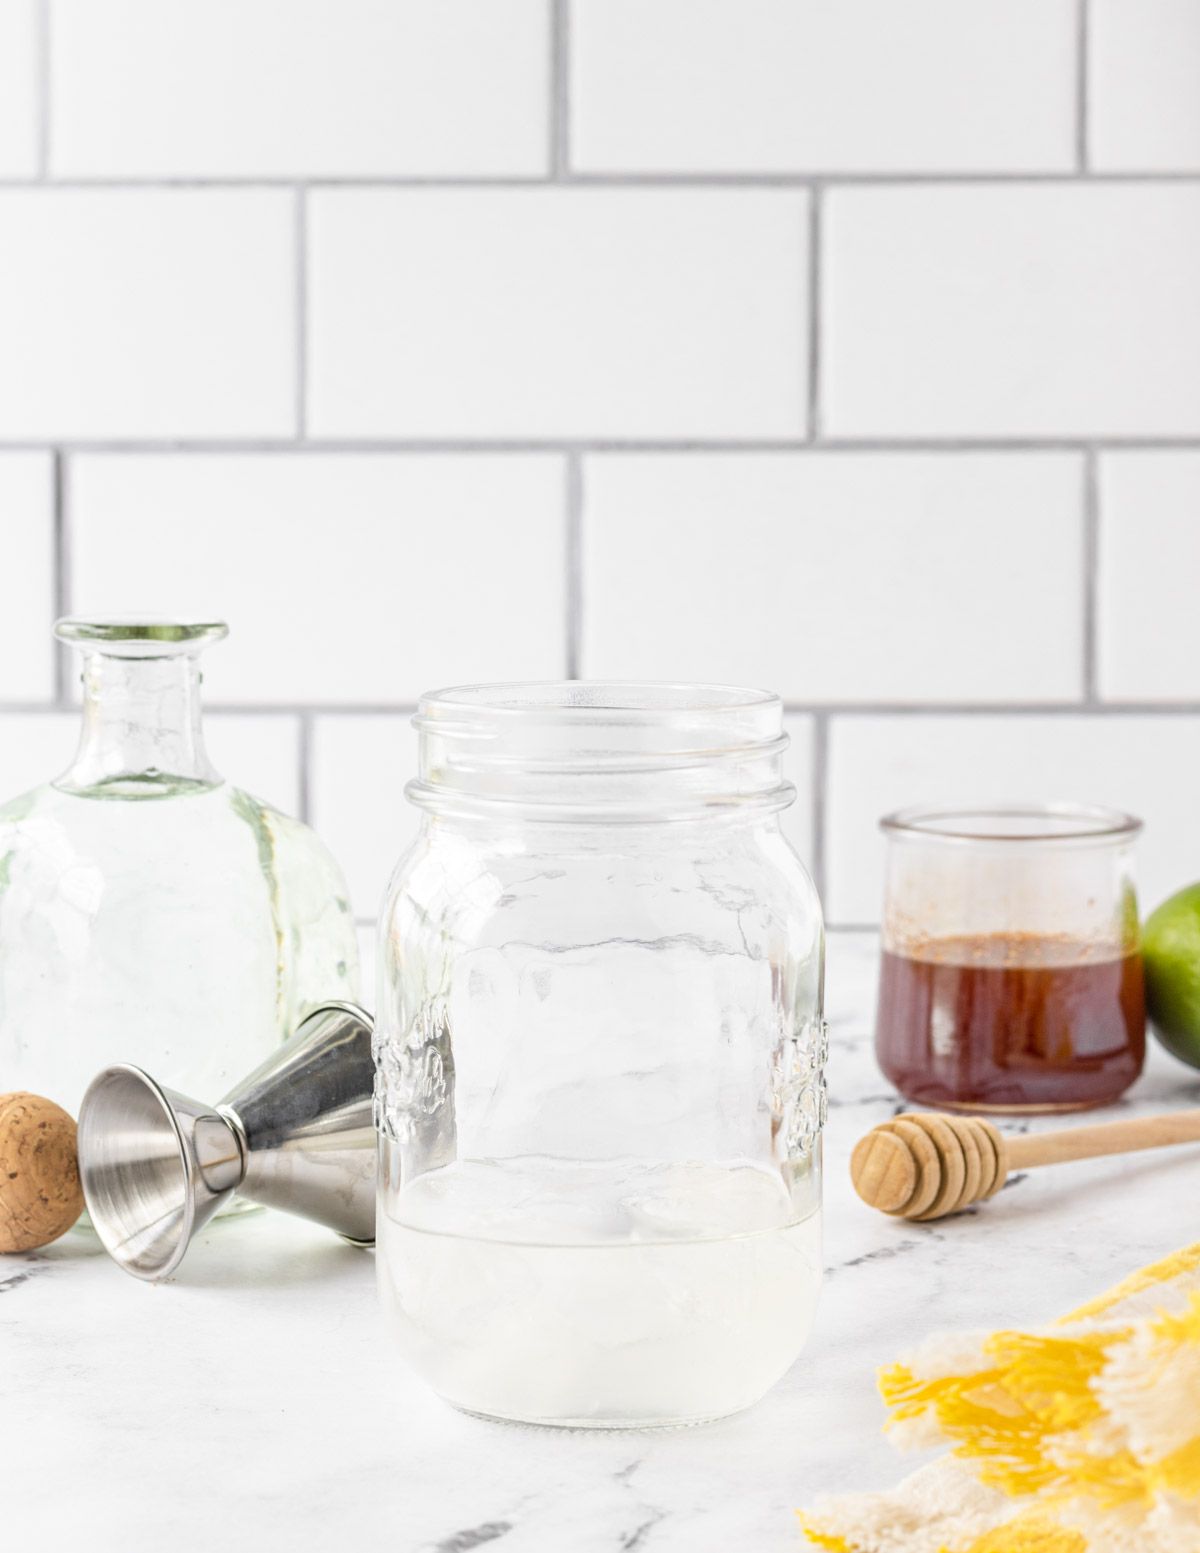 Mason jar with silver tequila added, and hot honey on the side.